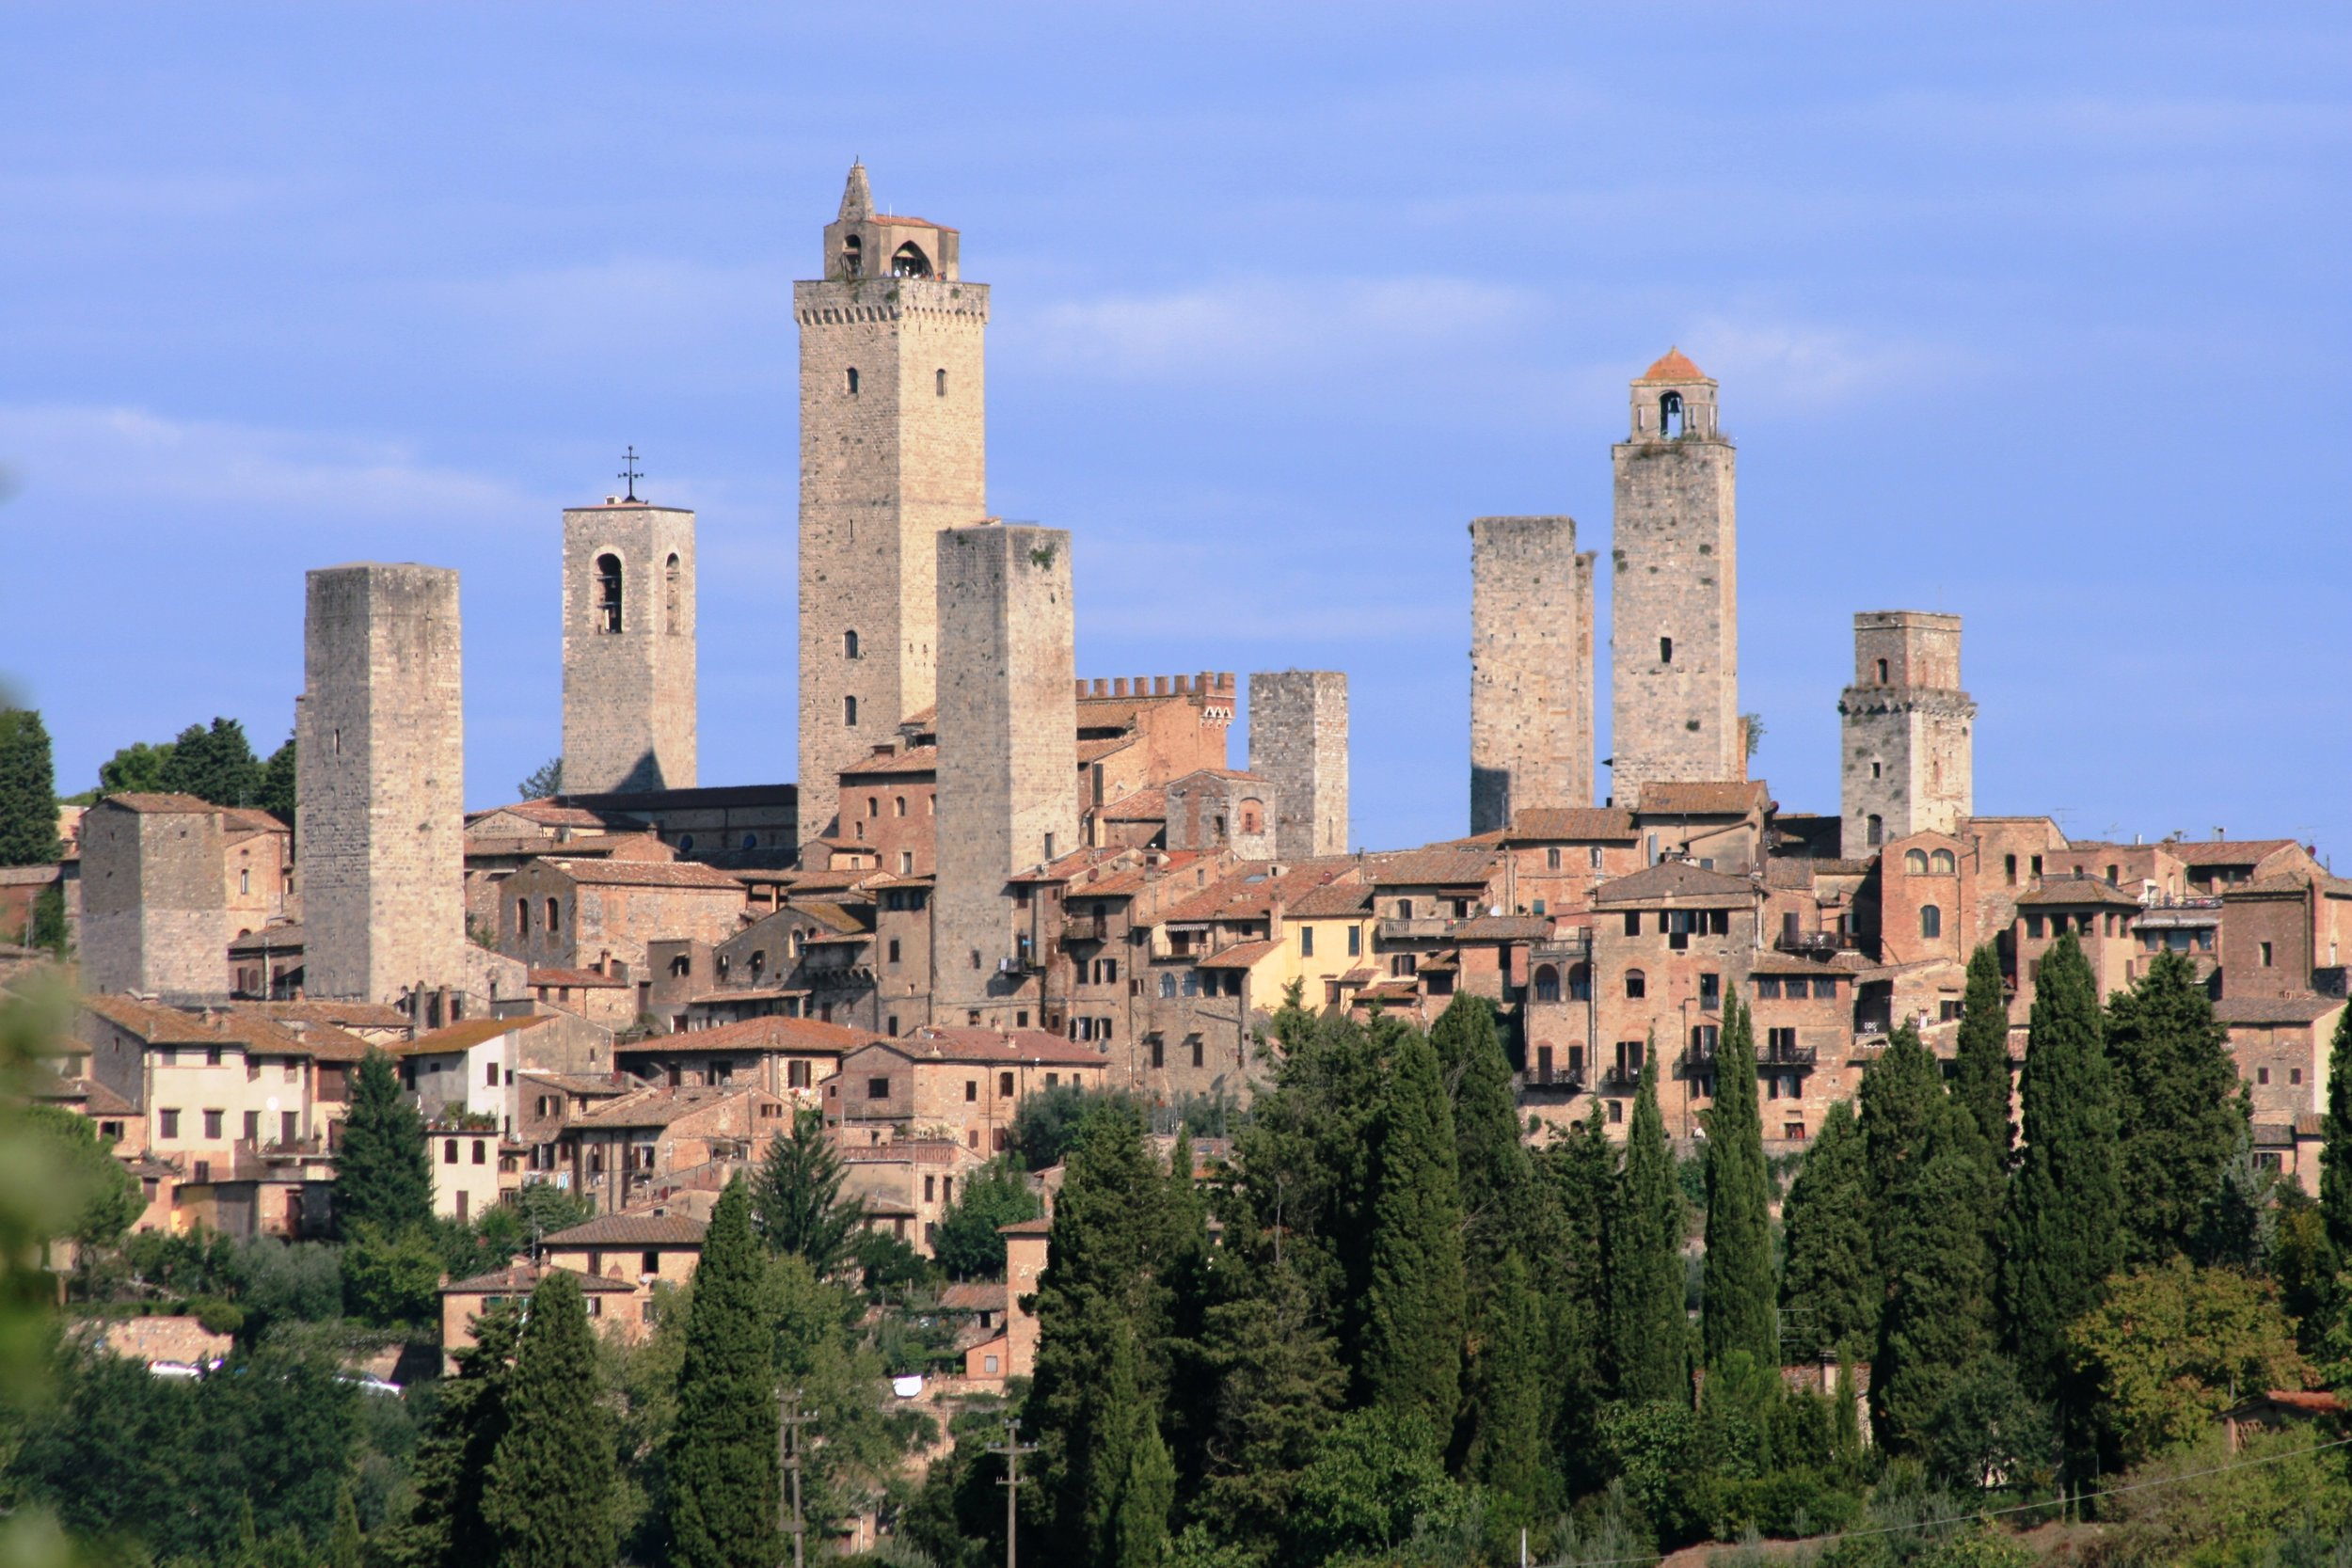 San Gimignano (image source unknown)